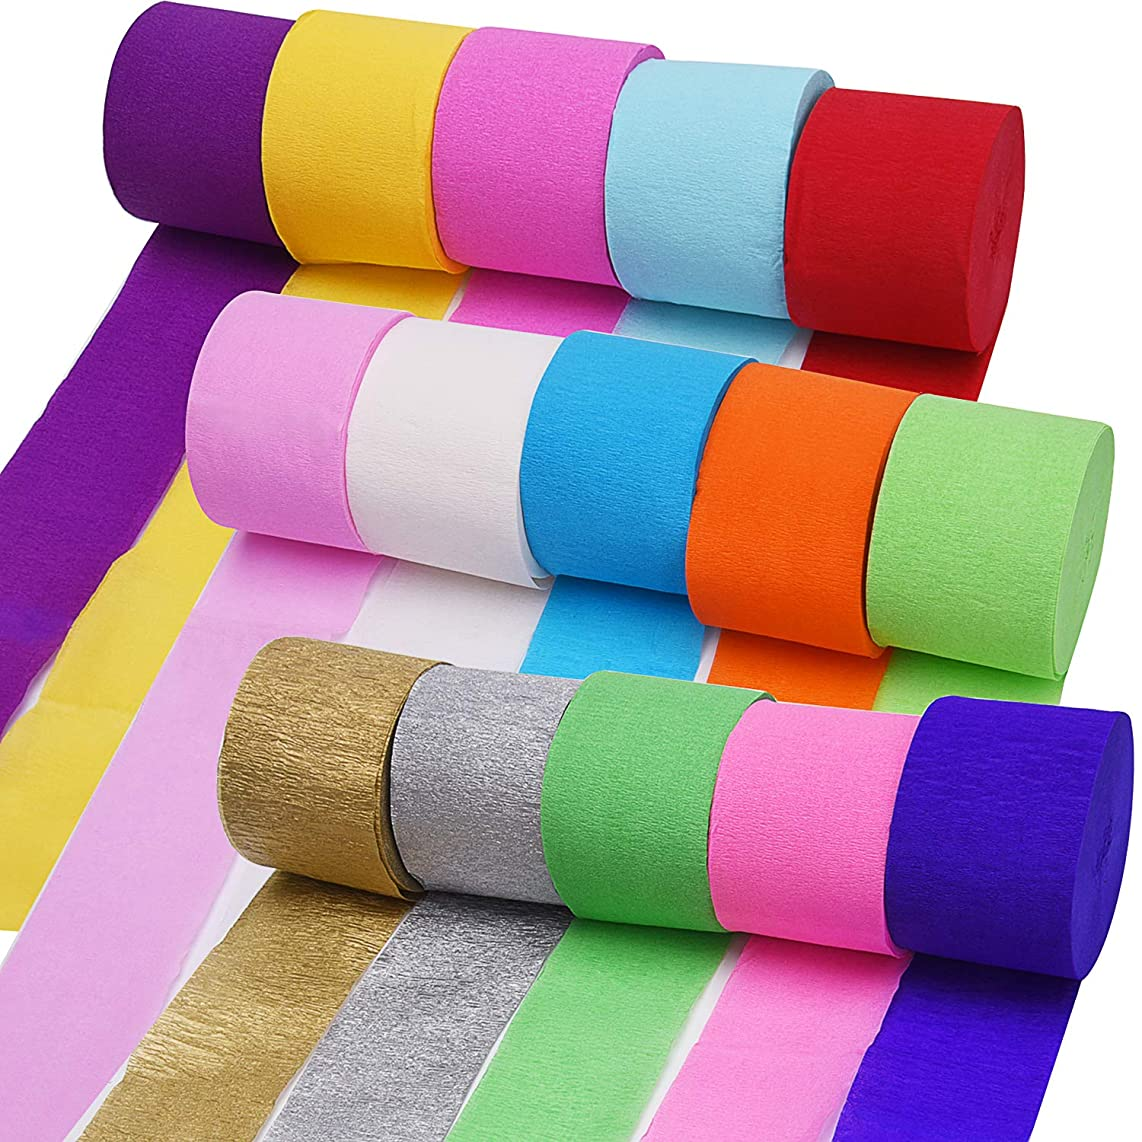 Livder 15 Rolls 410 Yard Party Streamers Backdrop Decorations Crepe Paper Rainbow Streamers 1.8 Inch W x 27 Yard/Roll for Photo Booth Backdrop Birthday Holiday Wedding Festival Party Celebration tl608703178614